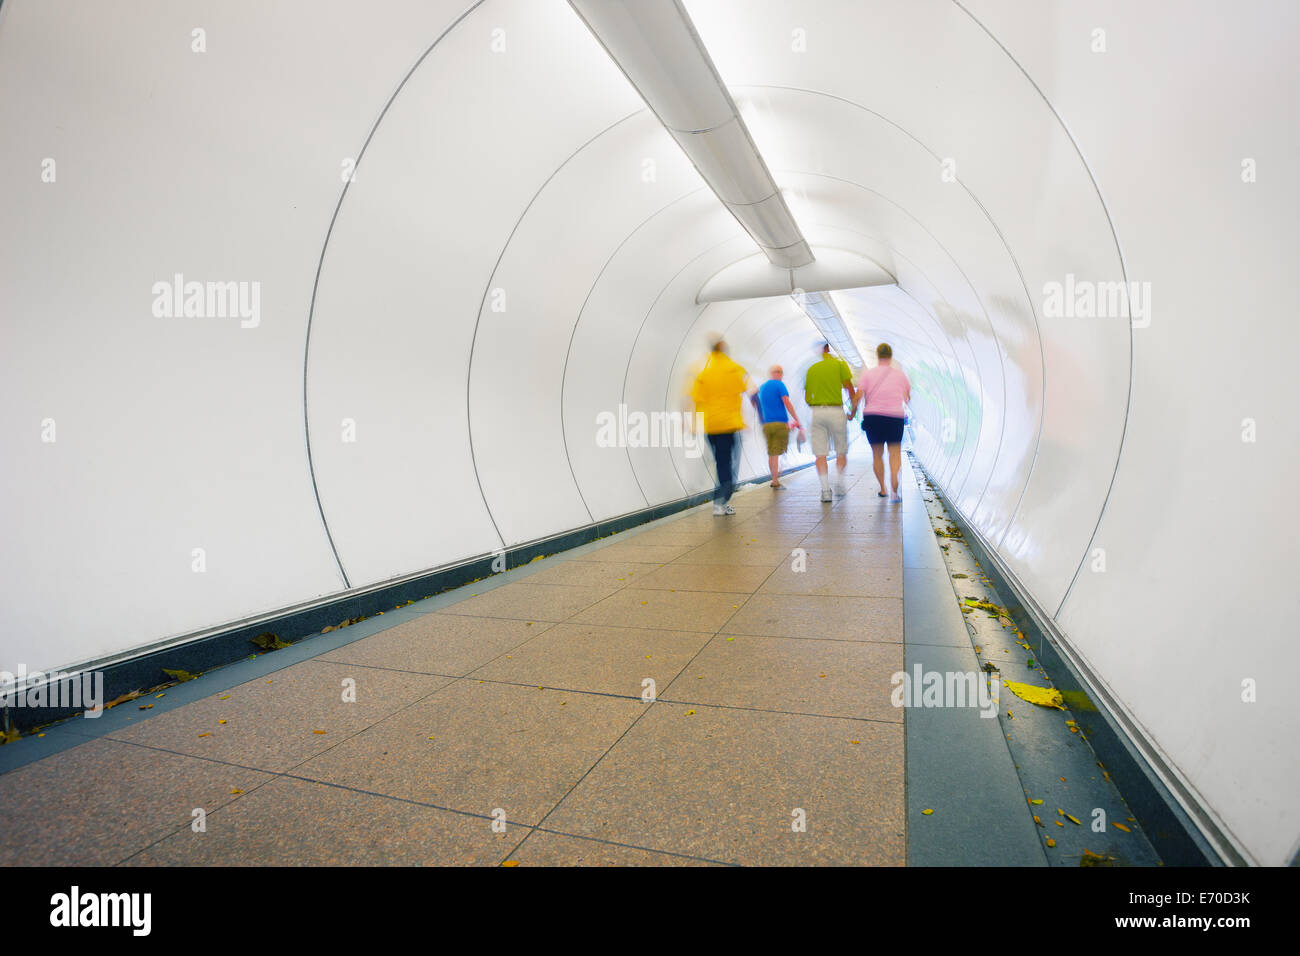 People go through the underpass. Abstract photo from the center of Singapore - Stock Image